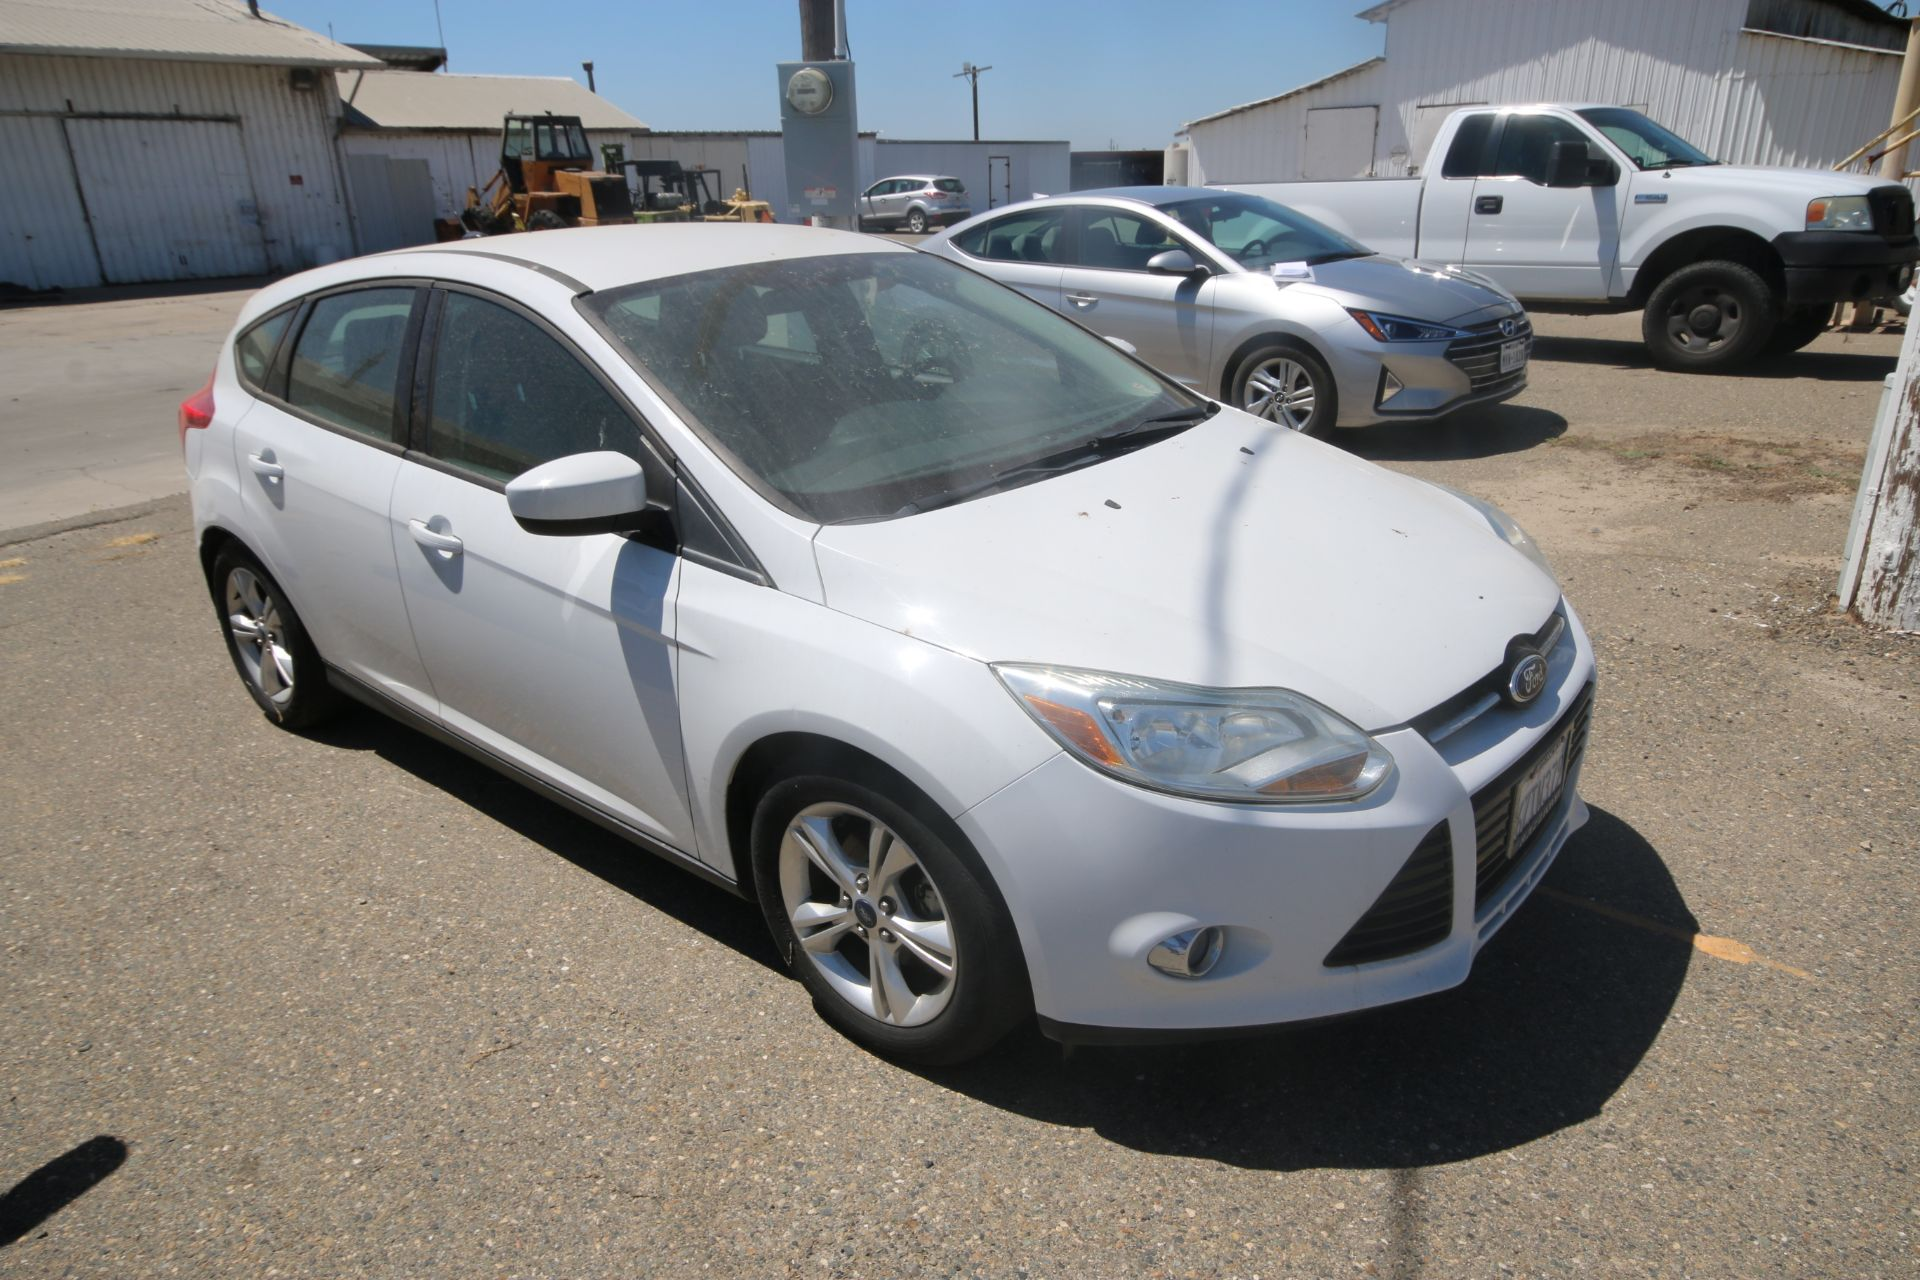 2012 White Ford Focus SE Hatchback 4D, VIN #: 1FAHP3K27CL423326, with 116,017 Miles, with 4-Doors, - Image 2 of 26